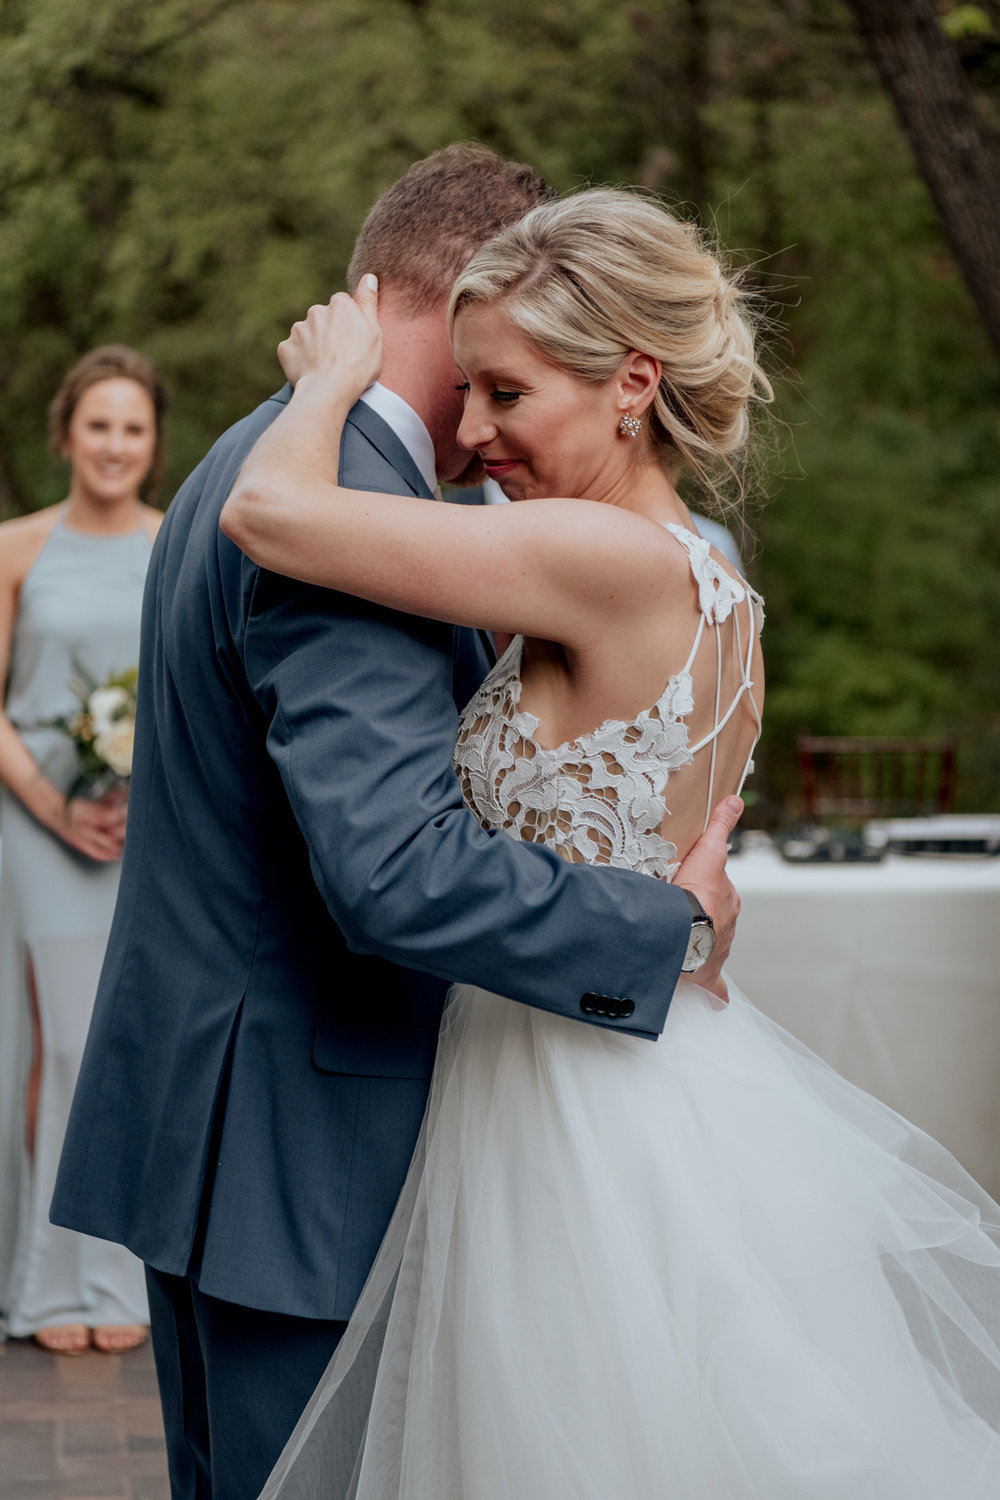 Matt-Kim-Wedding-Preview-77.jpg